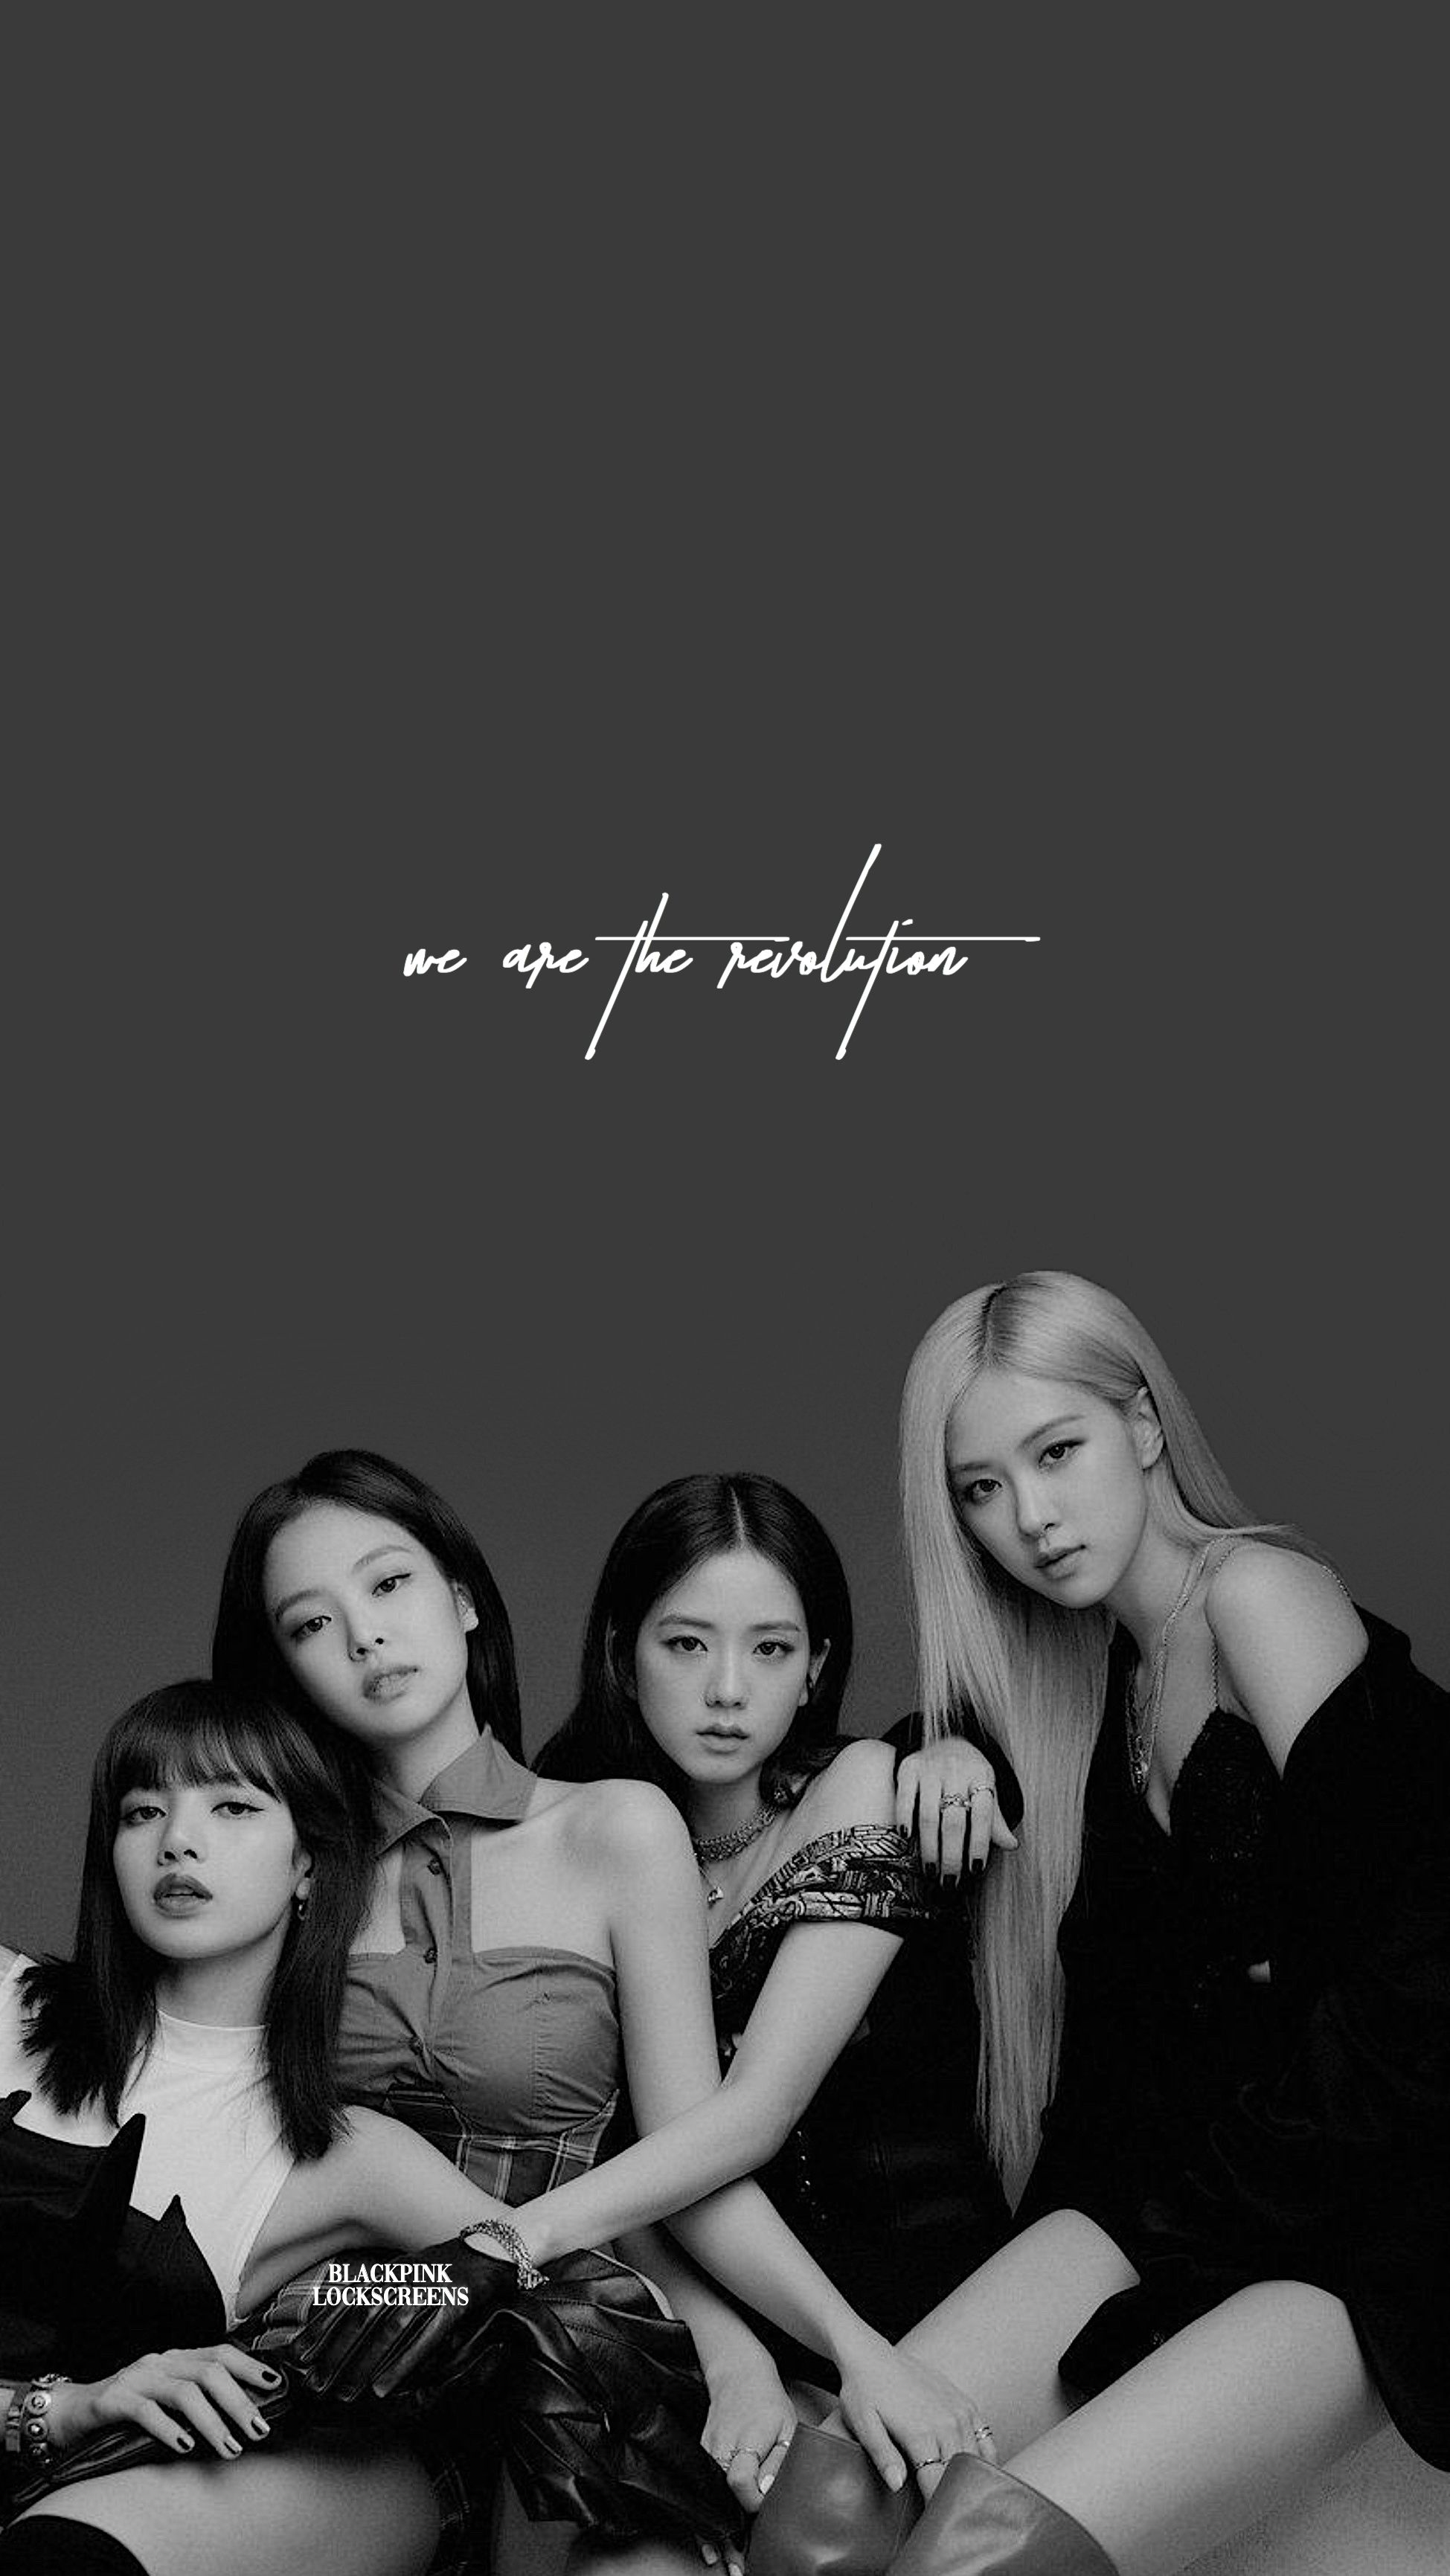 Follow Me On Instagram Blackpinklockscreens For More Blackpink